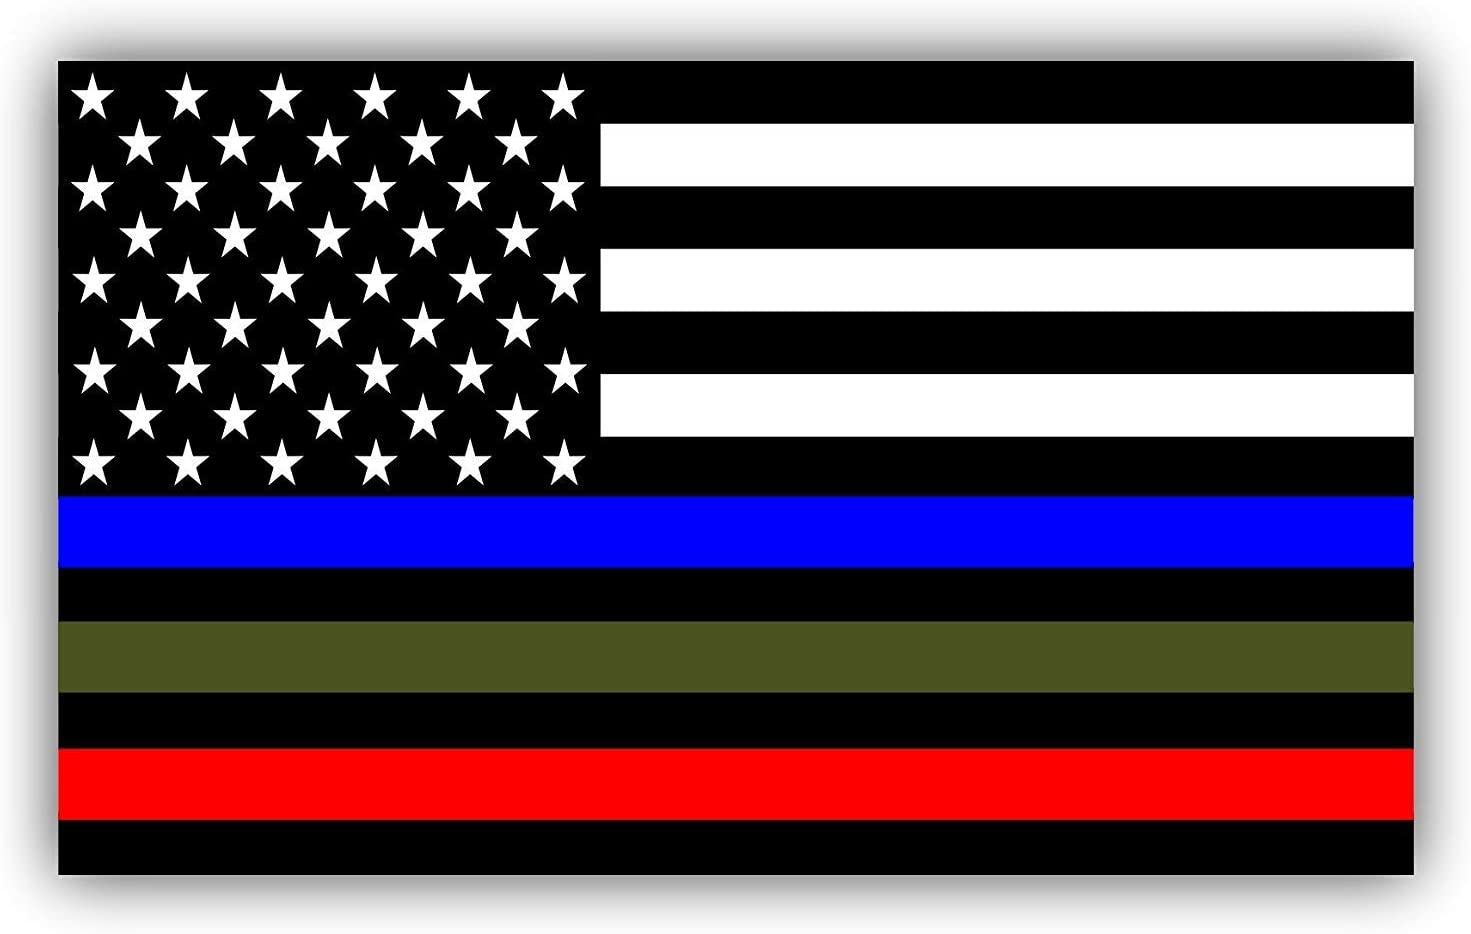 Magnet 2-8 Thin Silver Line American Subdued Flag Decal Corrections Guard Magnetic Sticker Rl